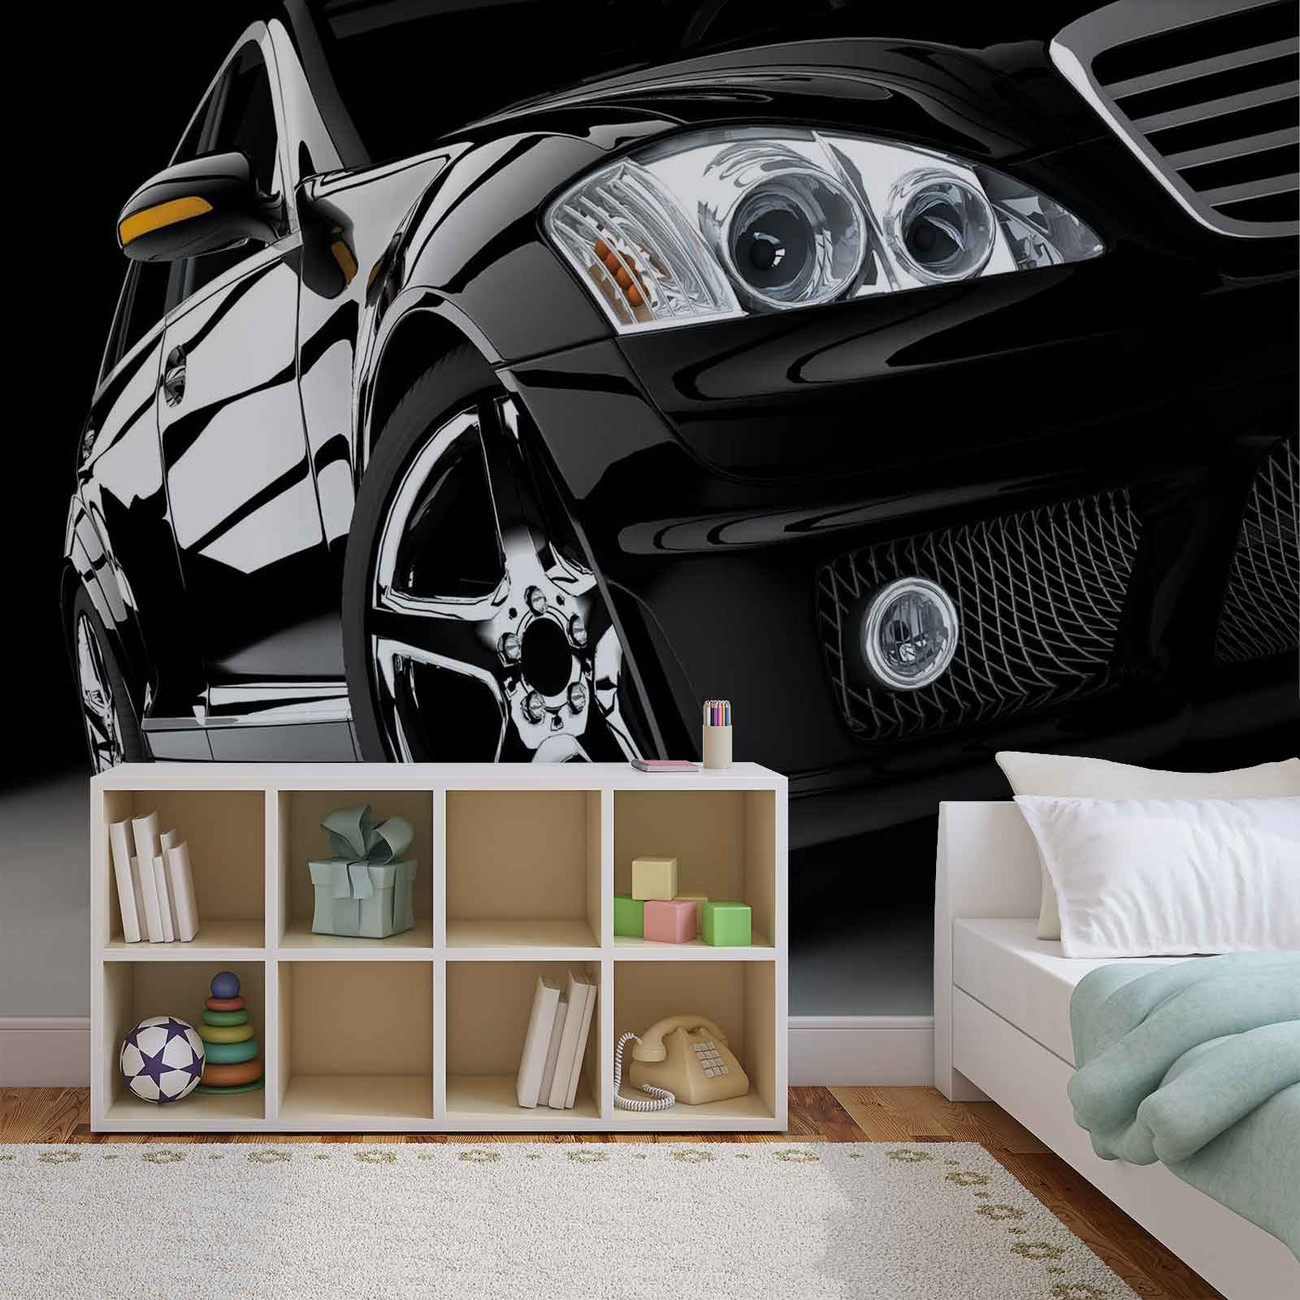 Car luxury wall paper mural buy at europosters for Cars movie wall mural